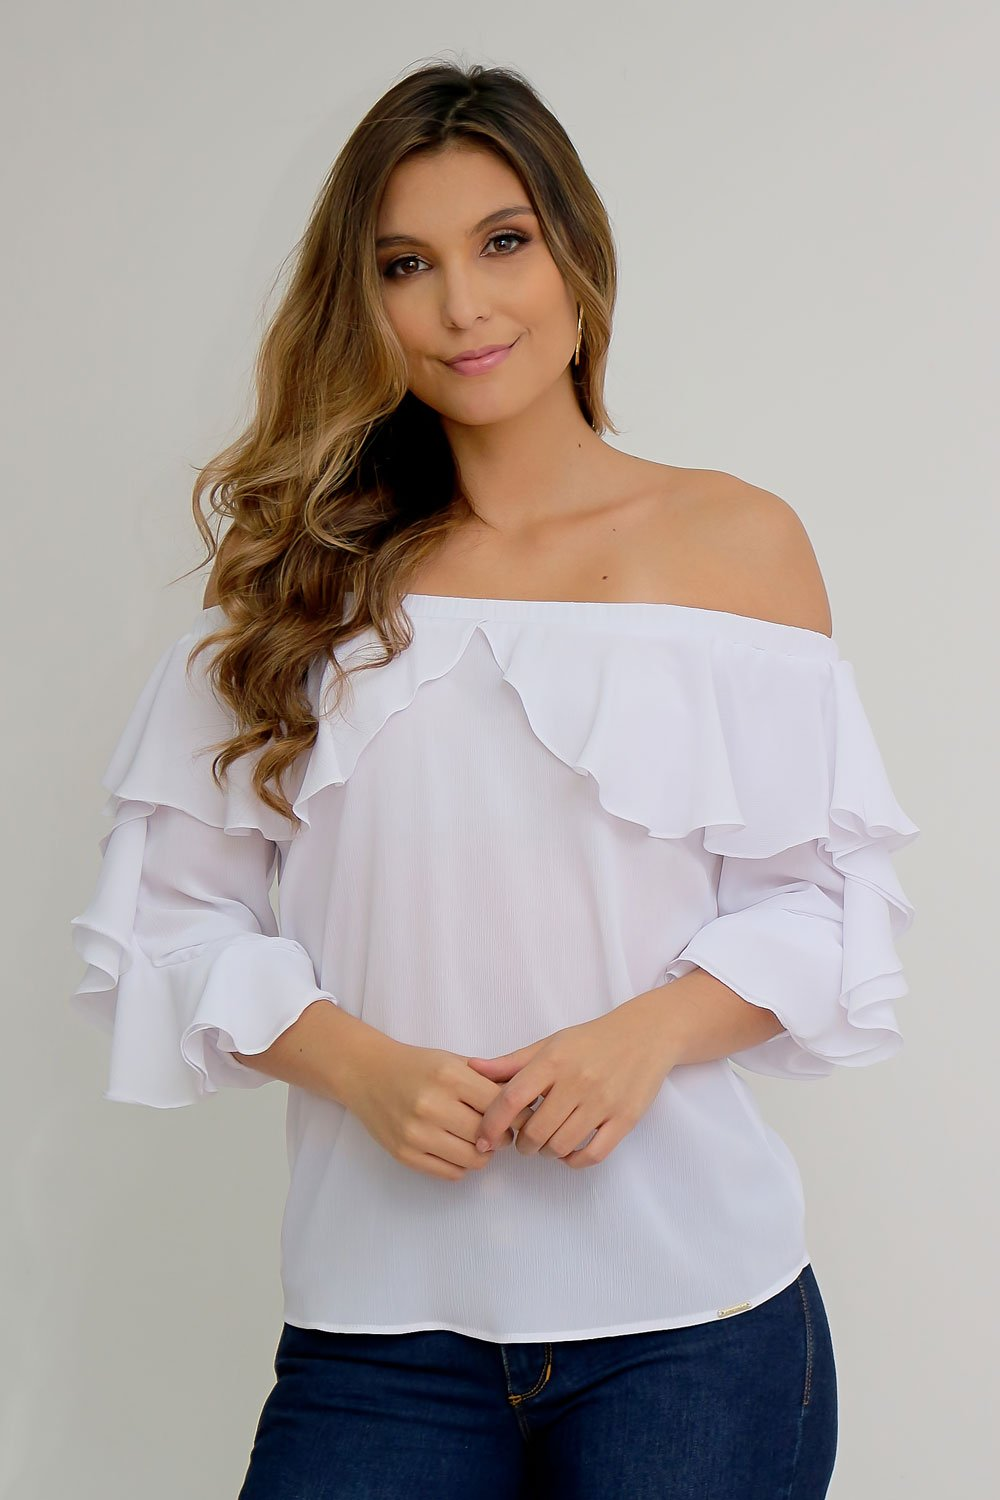 Blusa Off Shoulders con Boleros Blanca talla 8